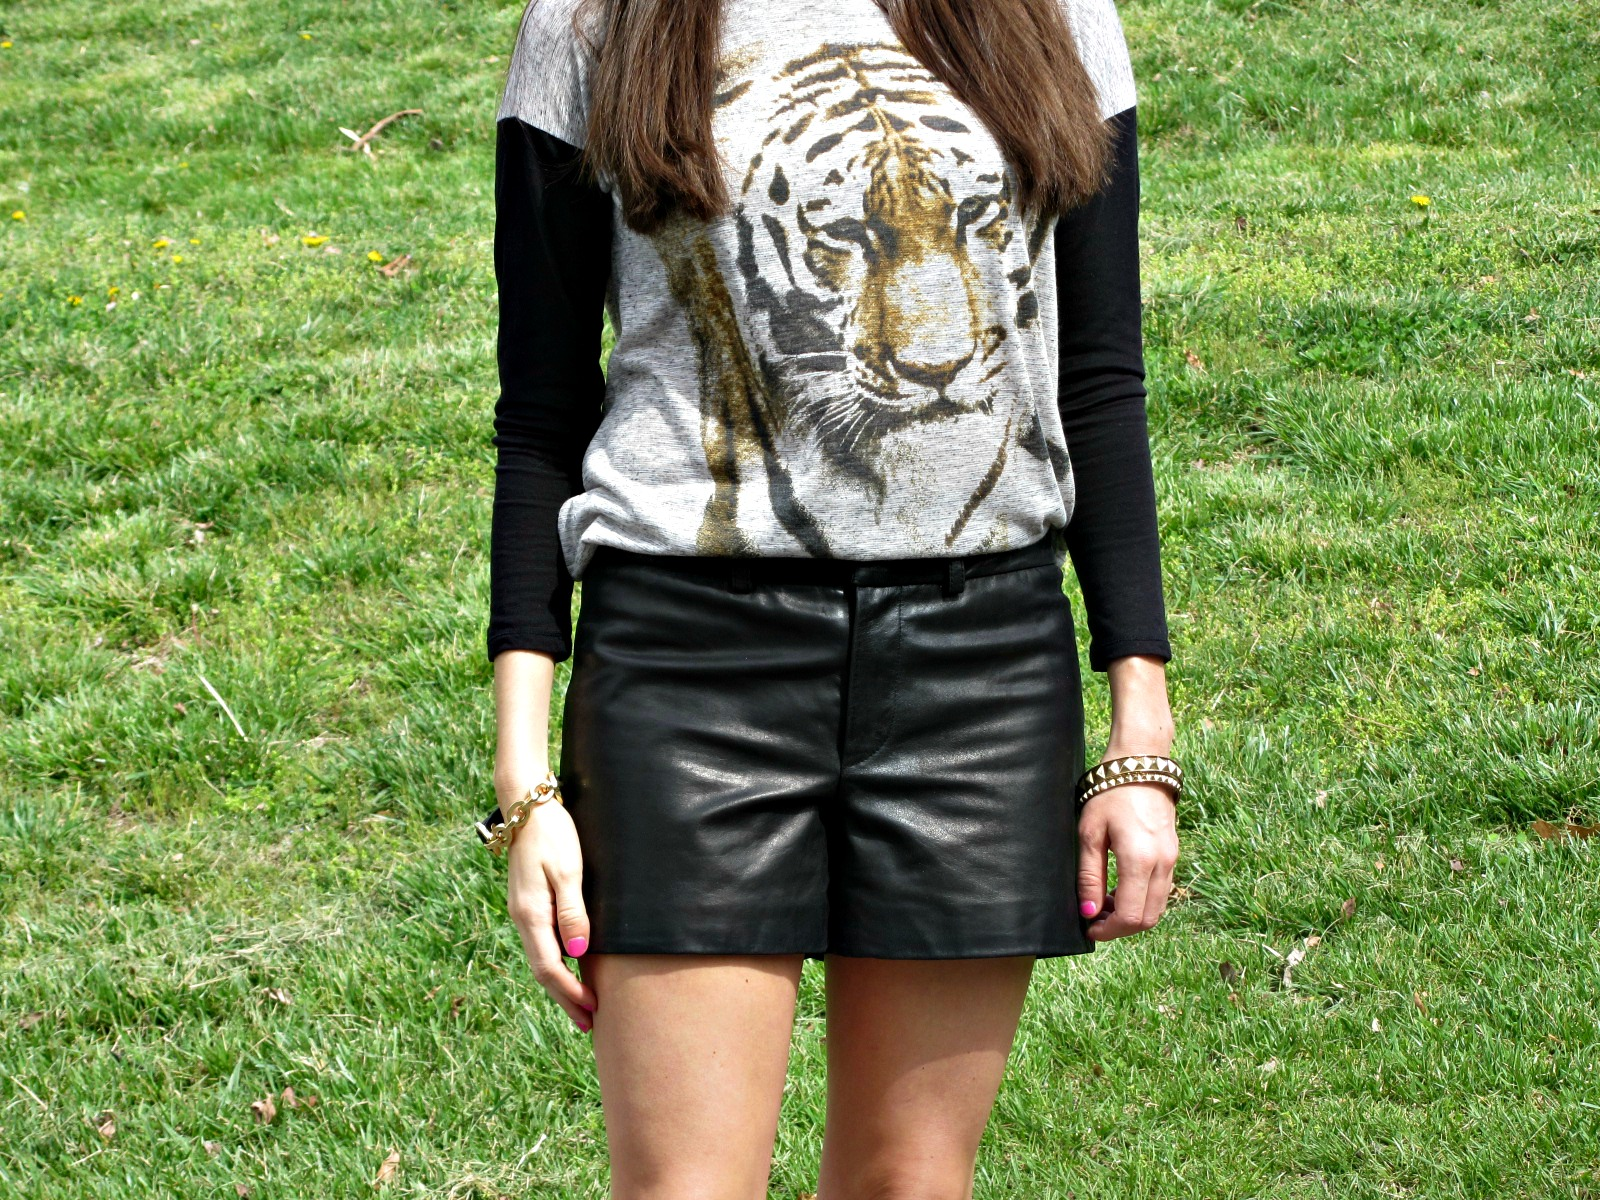 chelsea and violet tiger shirt, Gianni Bini leather shorts